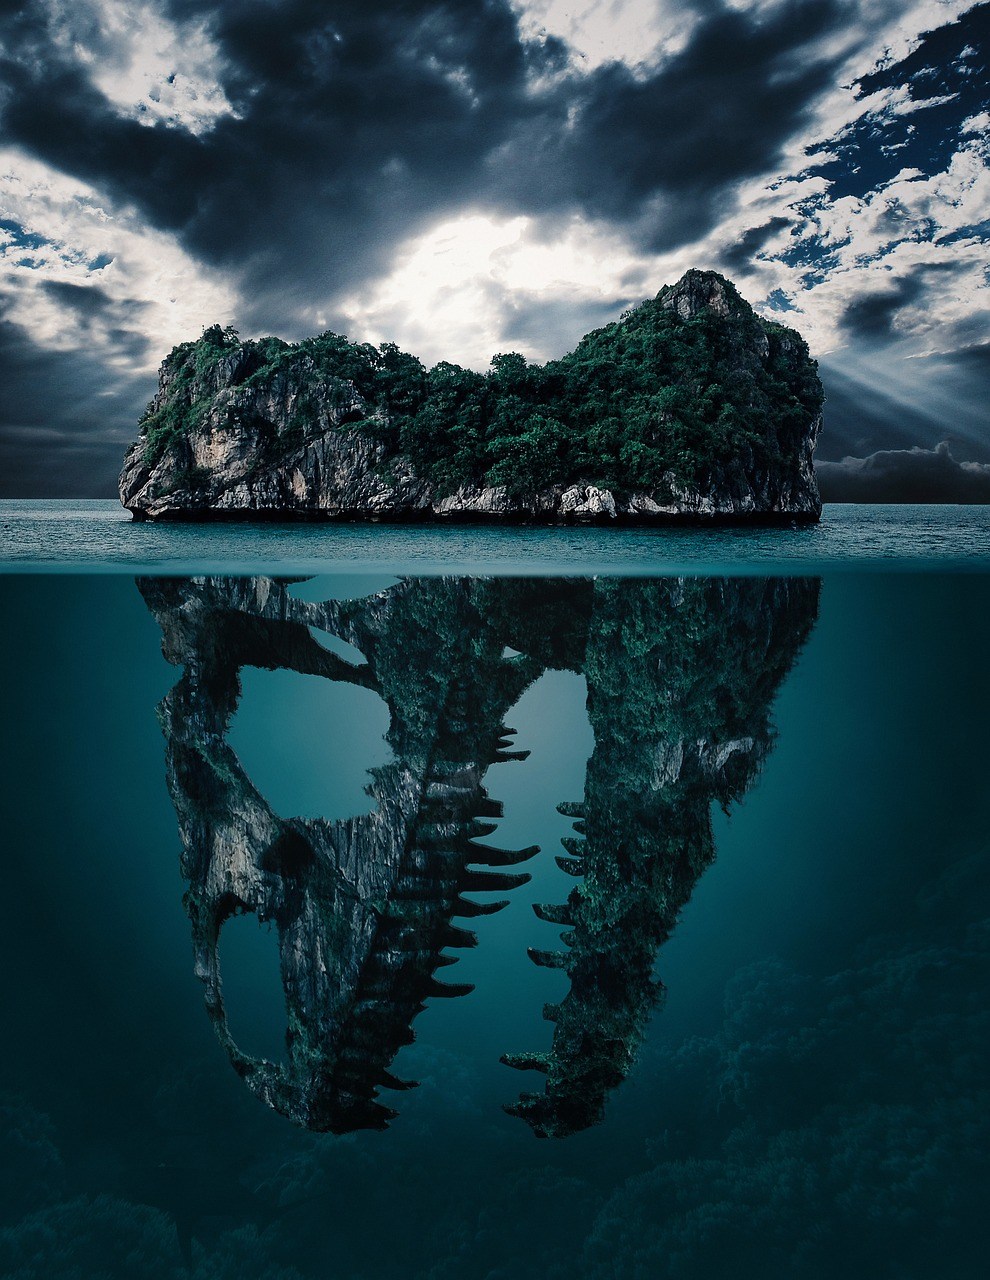 Swimming in the Sea of Mysteries - Stories in Science